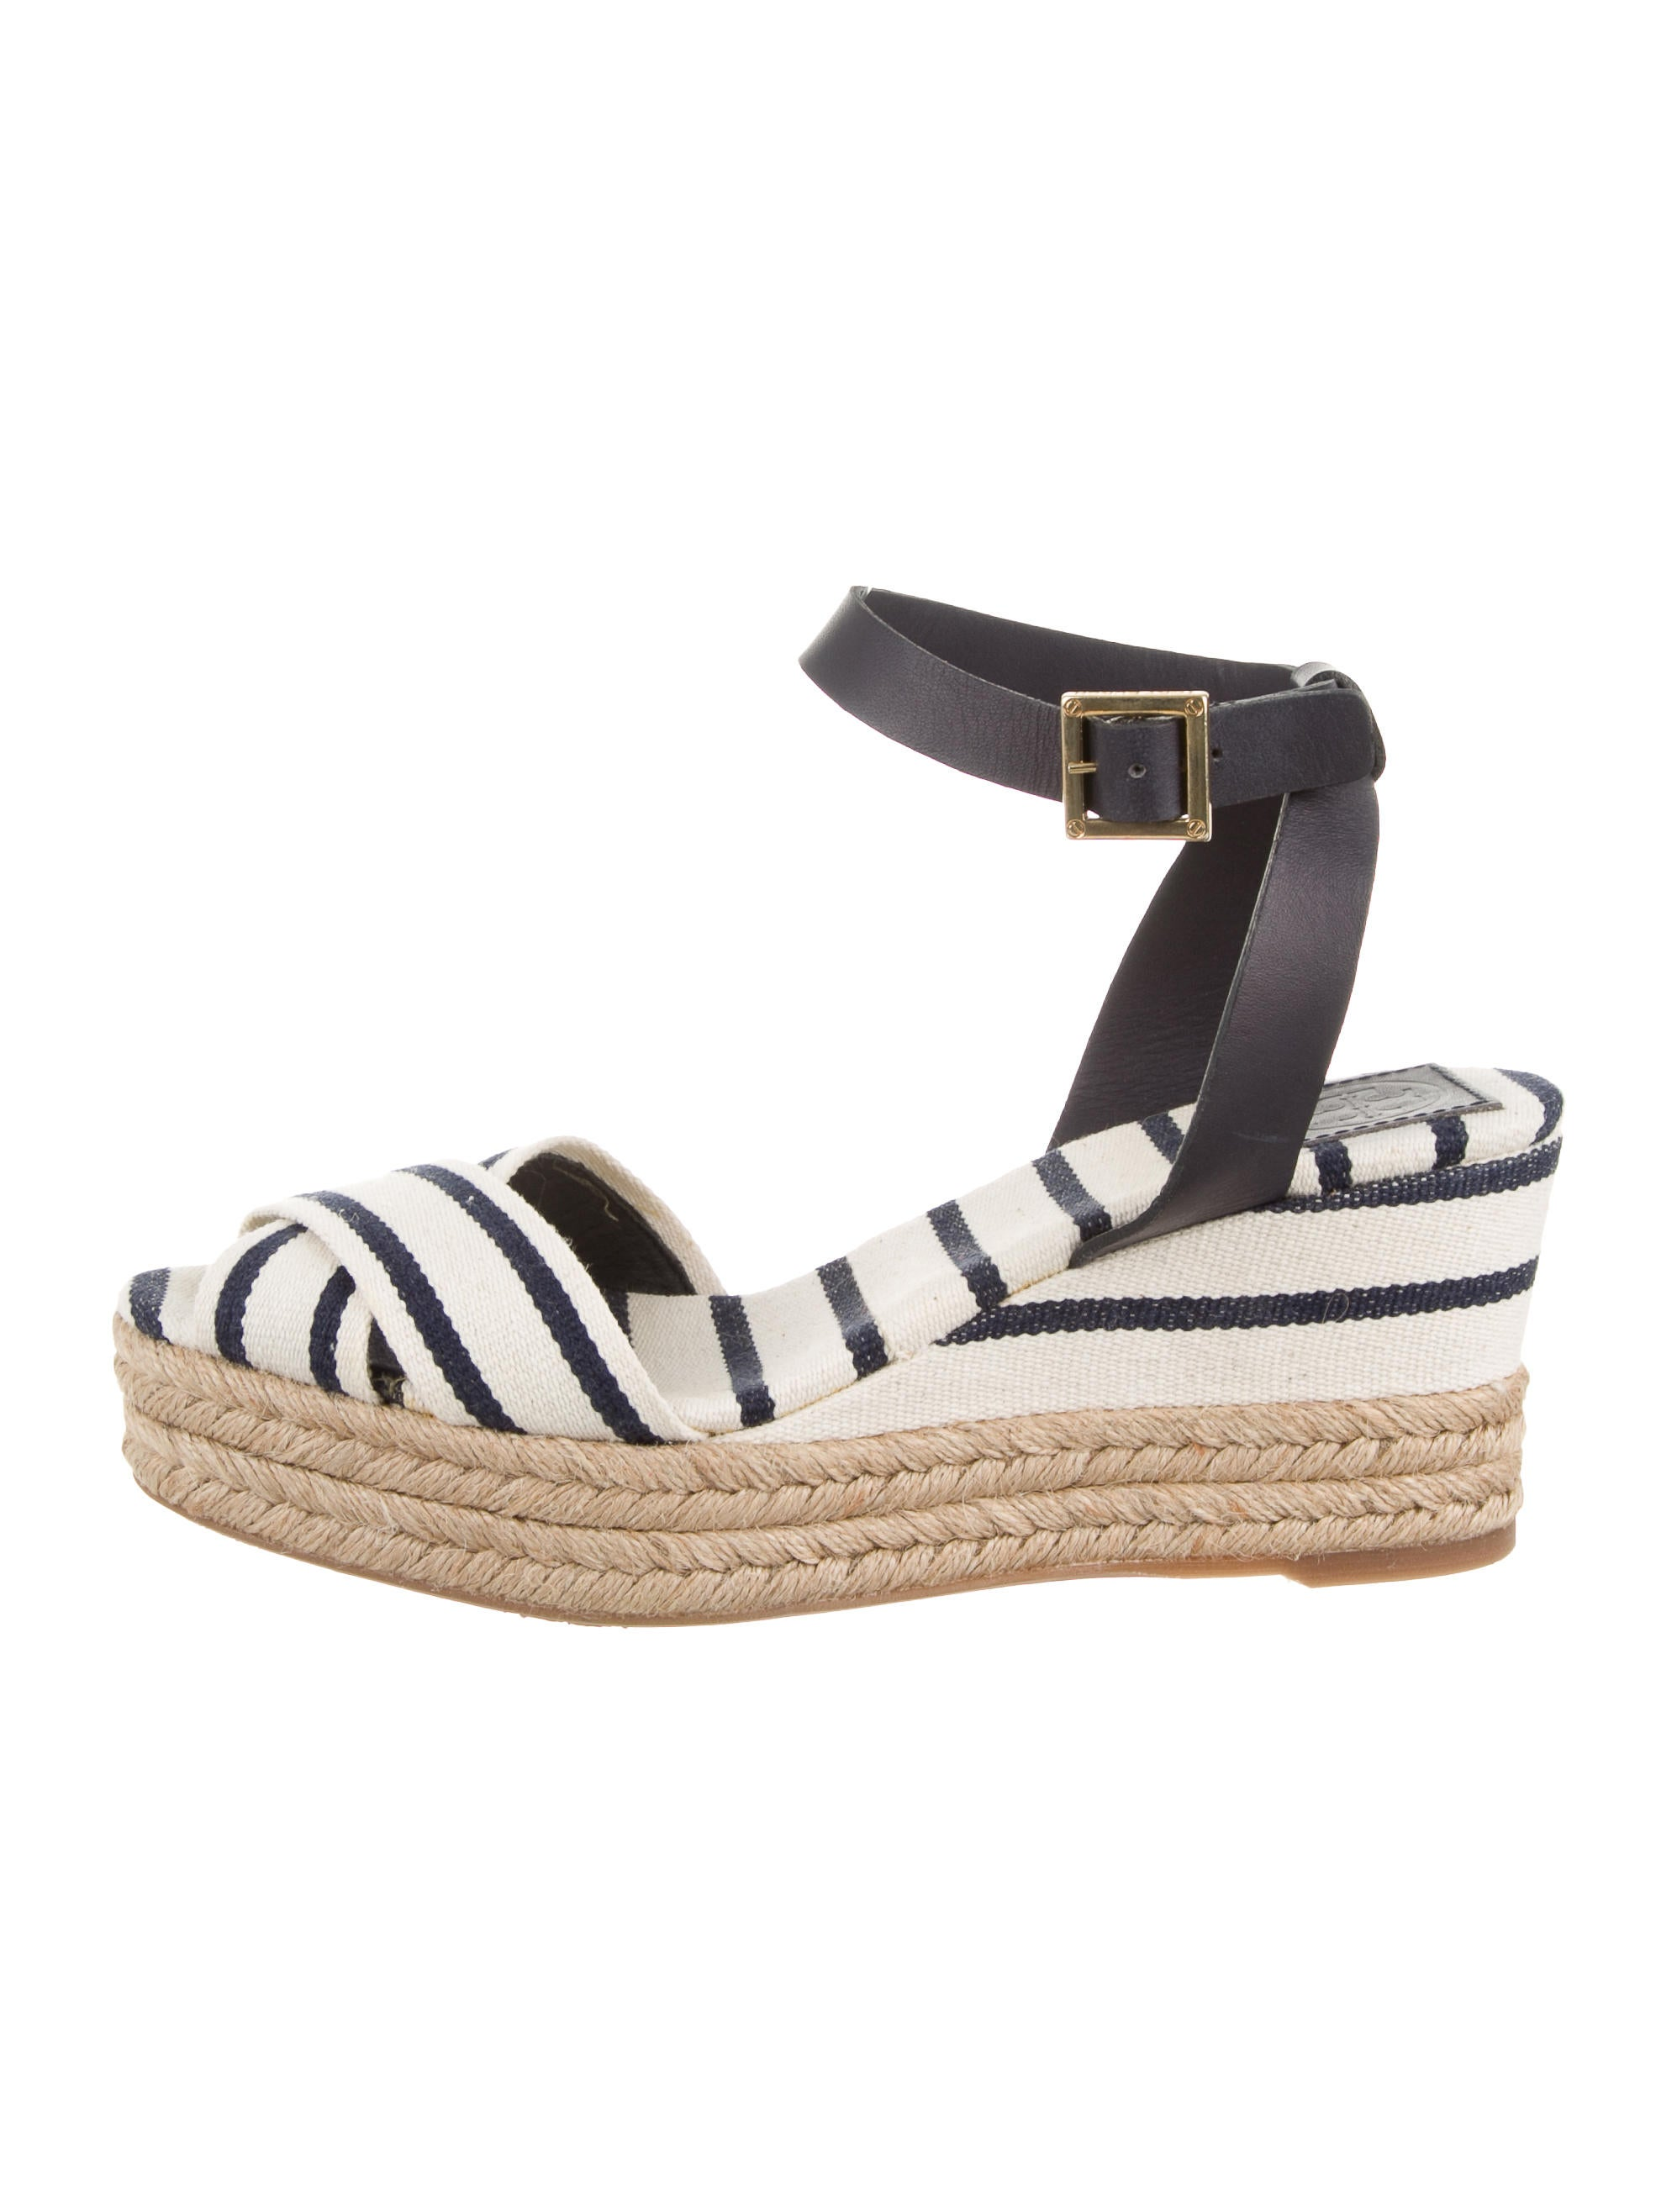 burch striped wedge sandals shoes wto54732 the